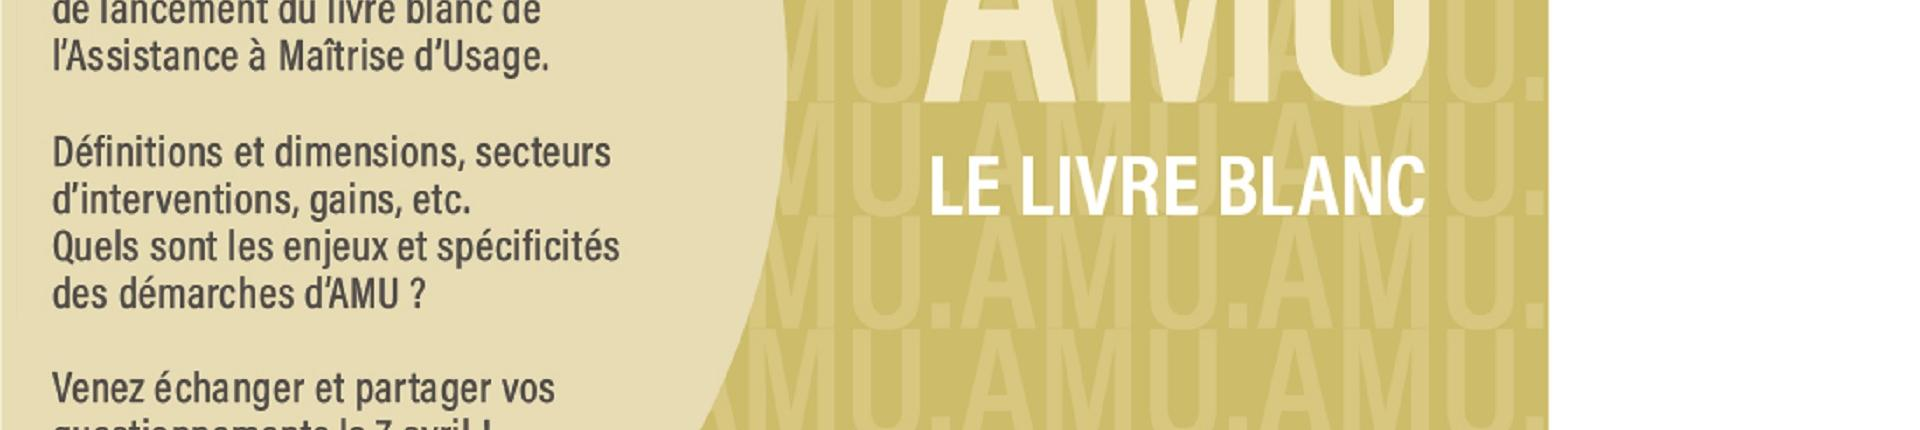 Save the date 7 avril 2020 livre blanc de l'AMU